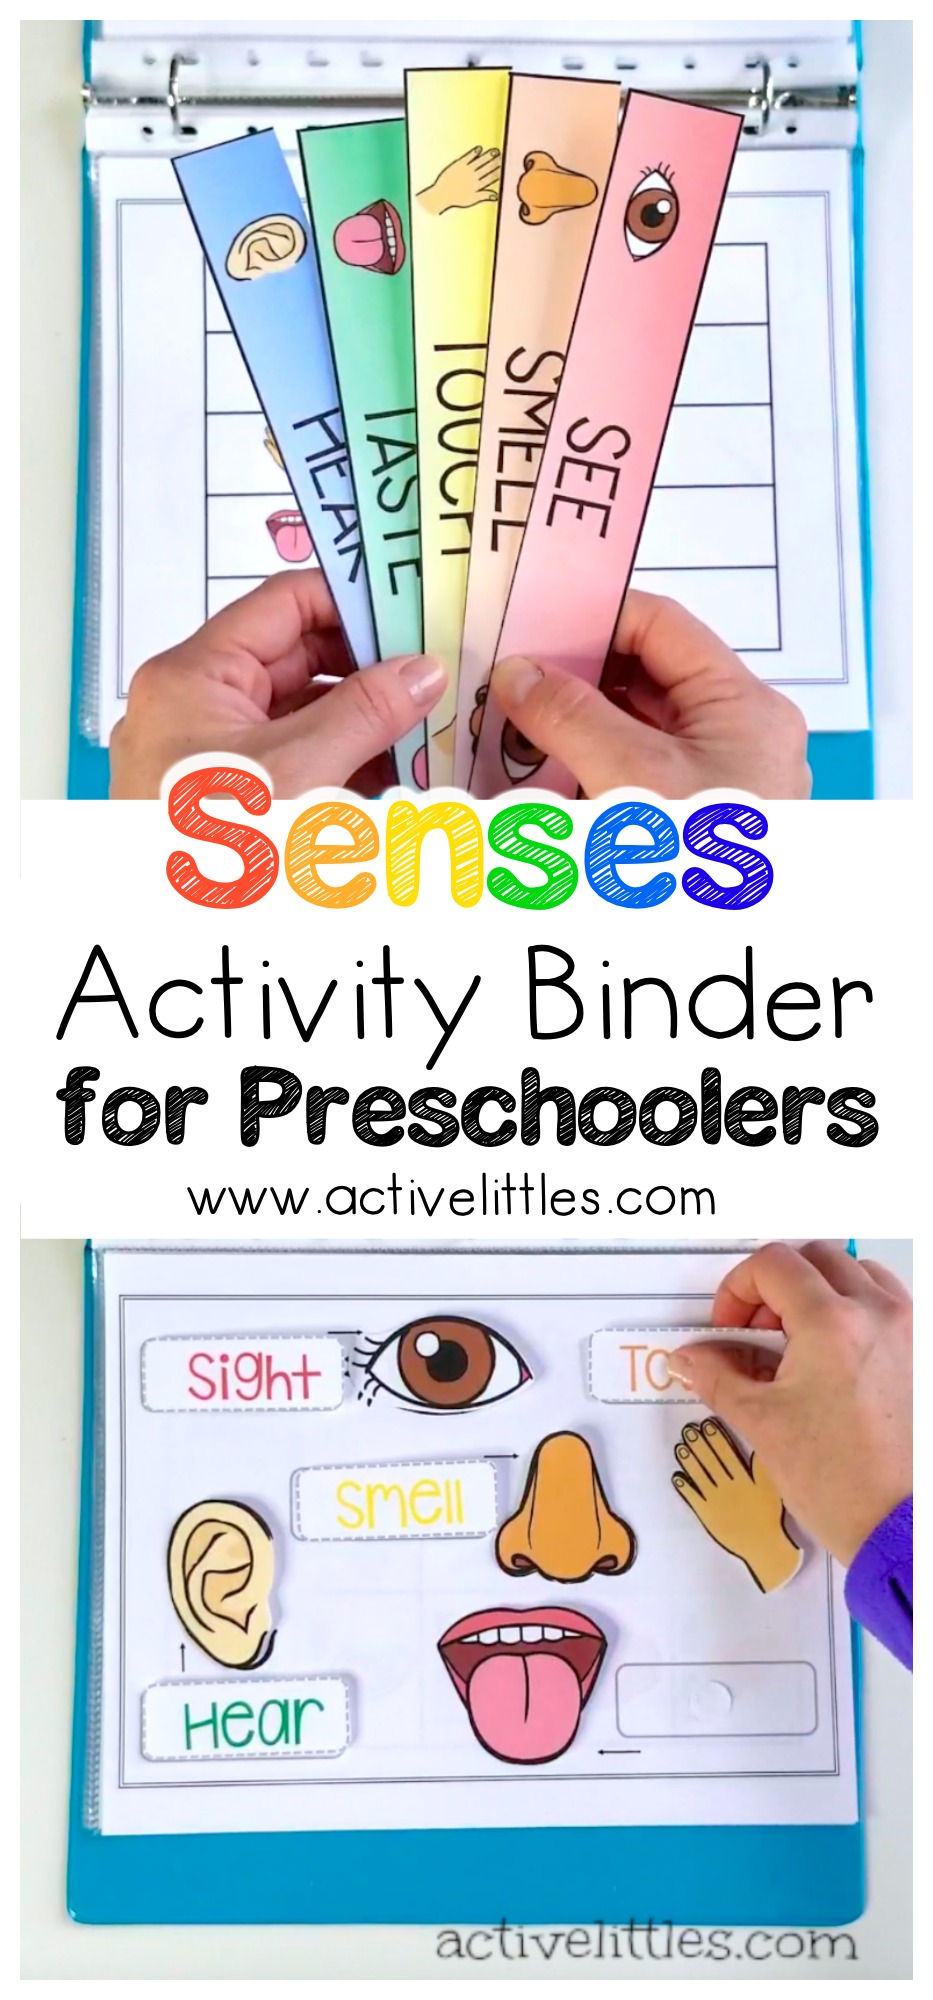 Senses Learning Activity Binder for Preschoolers and Kids ...